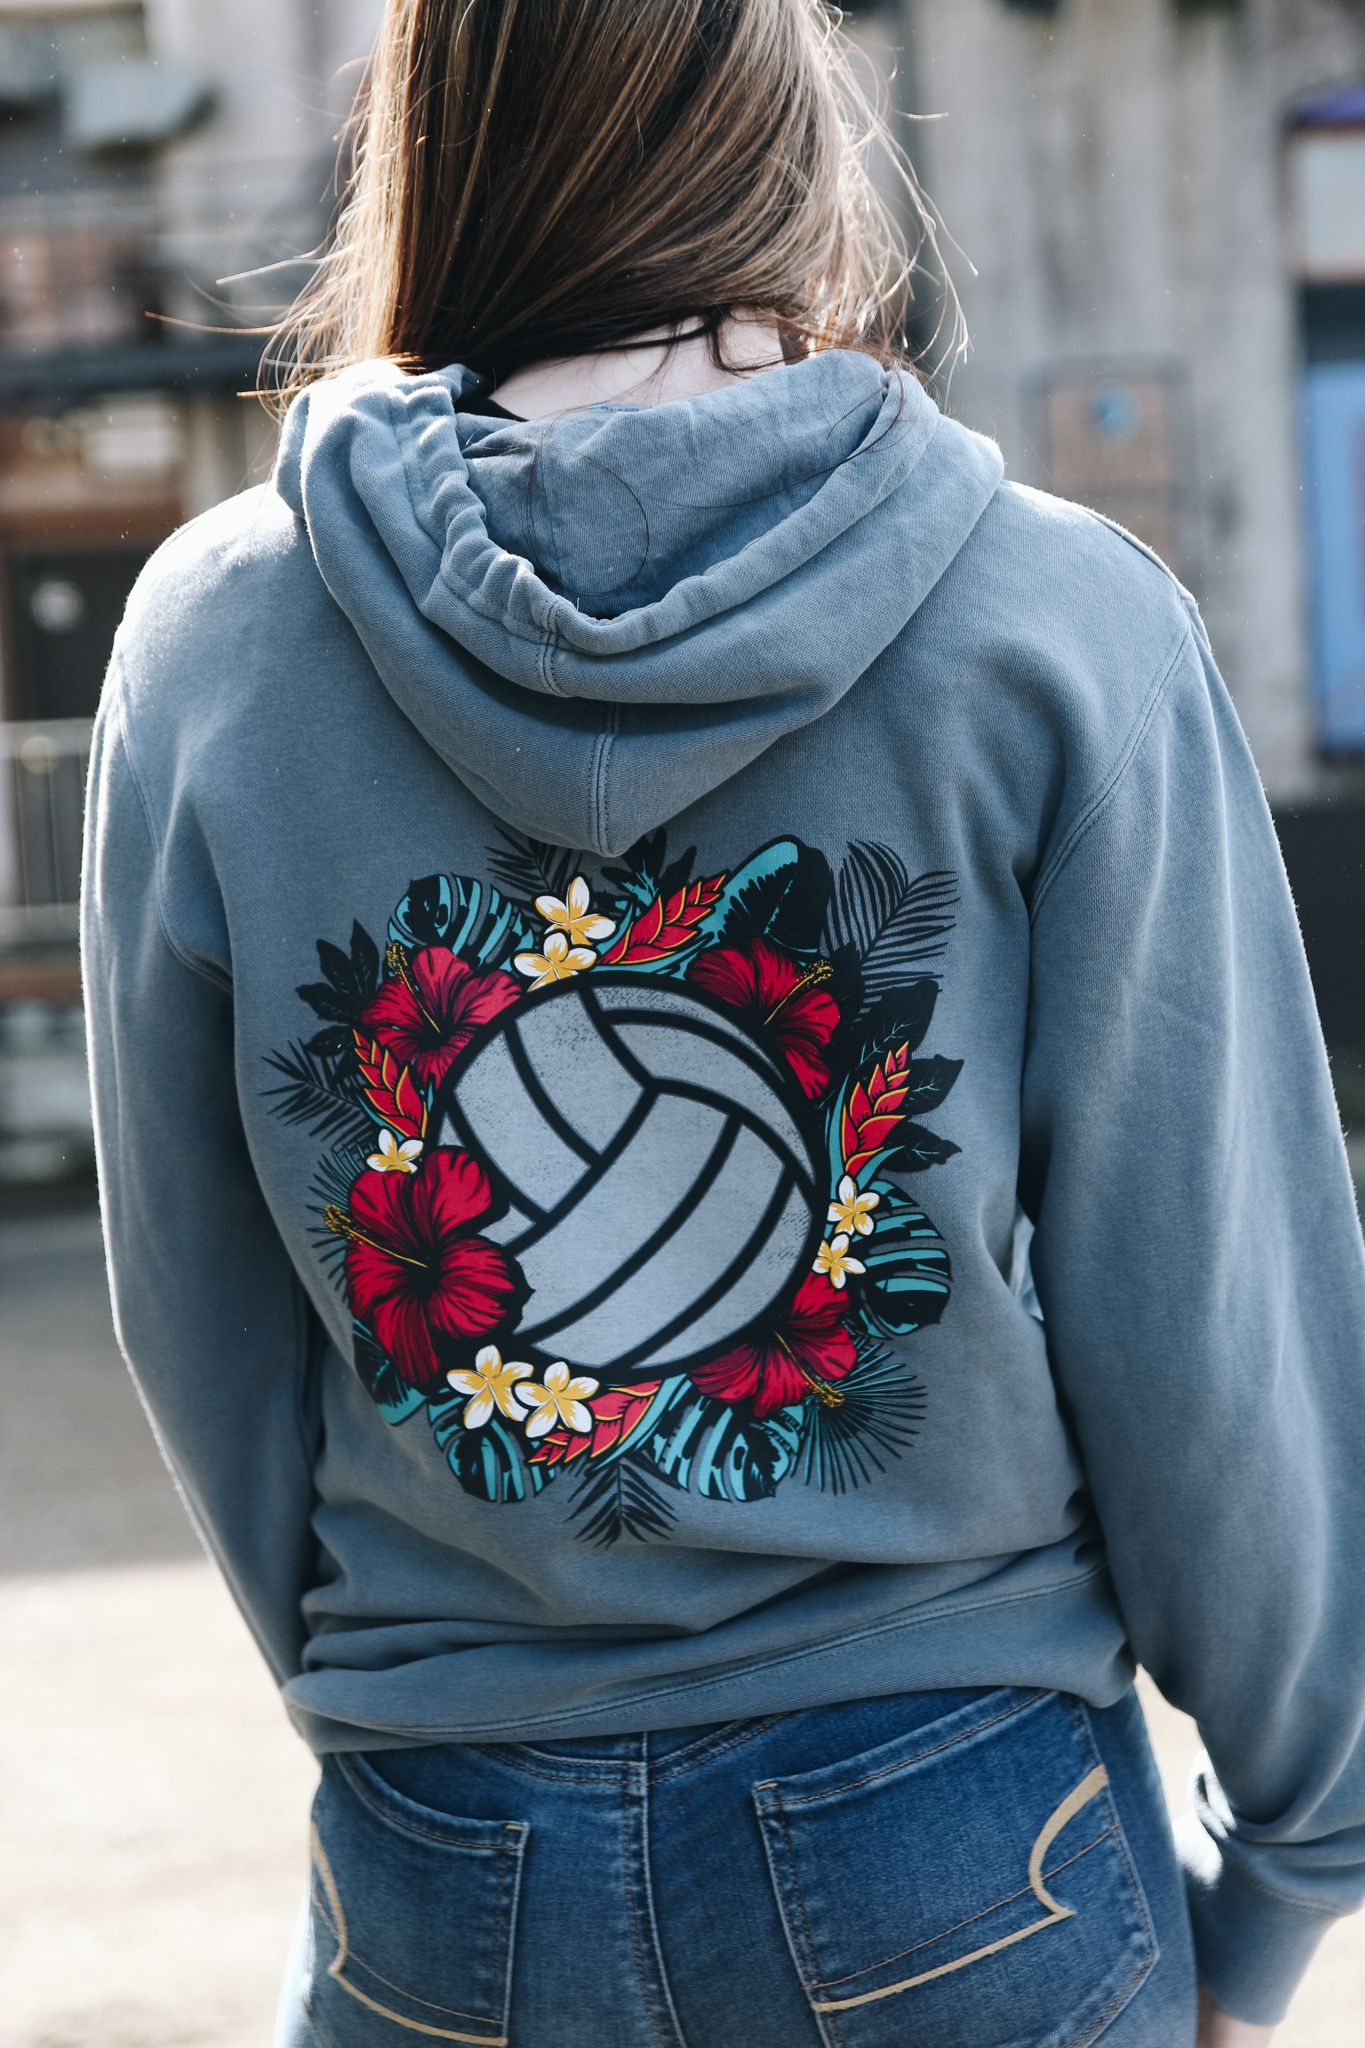 Kona Volleyball Outfits Volleyball Sweatshirts Volleyball Shirt Designs